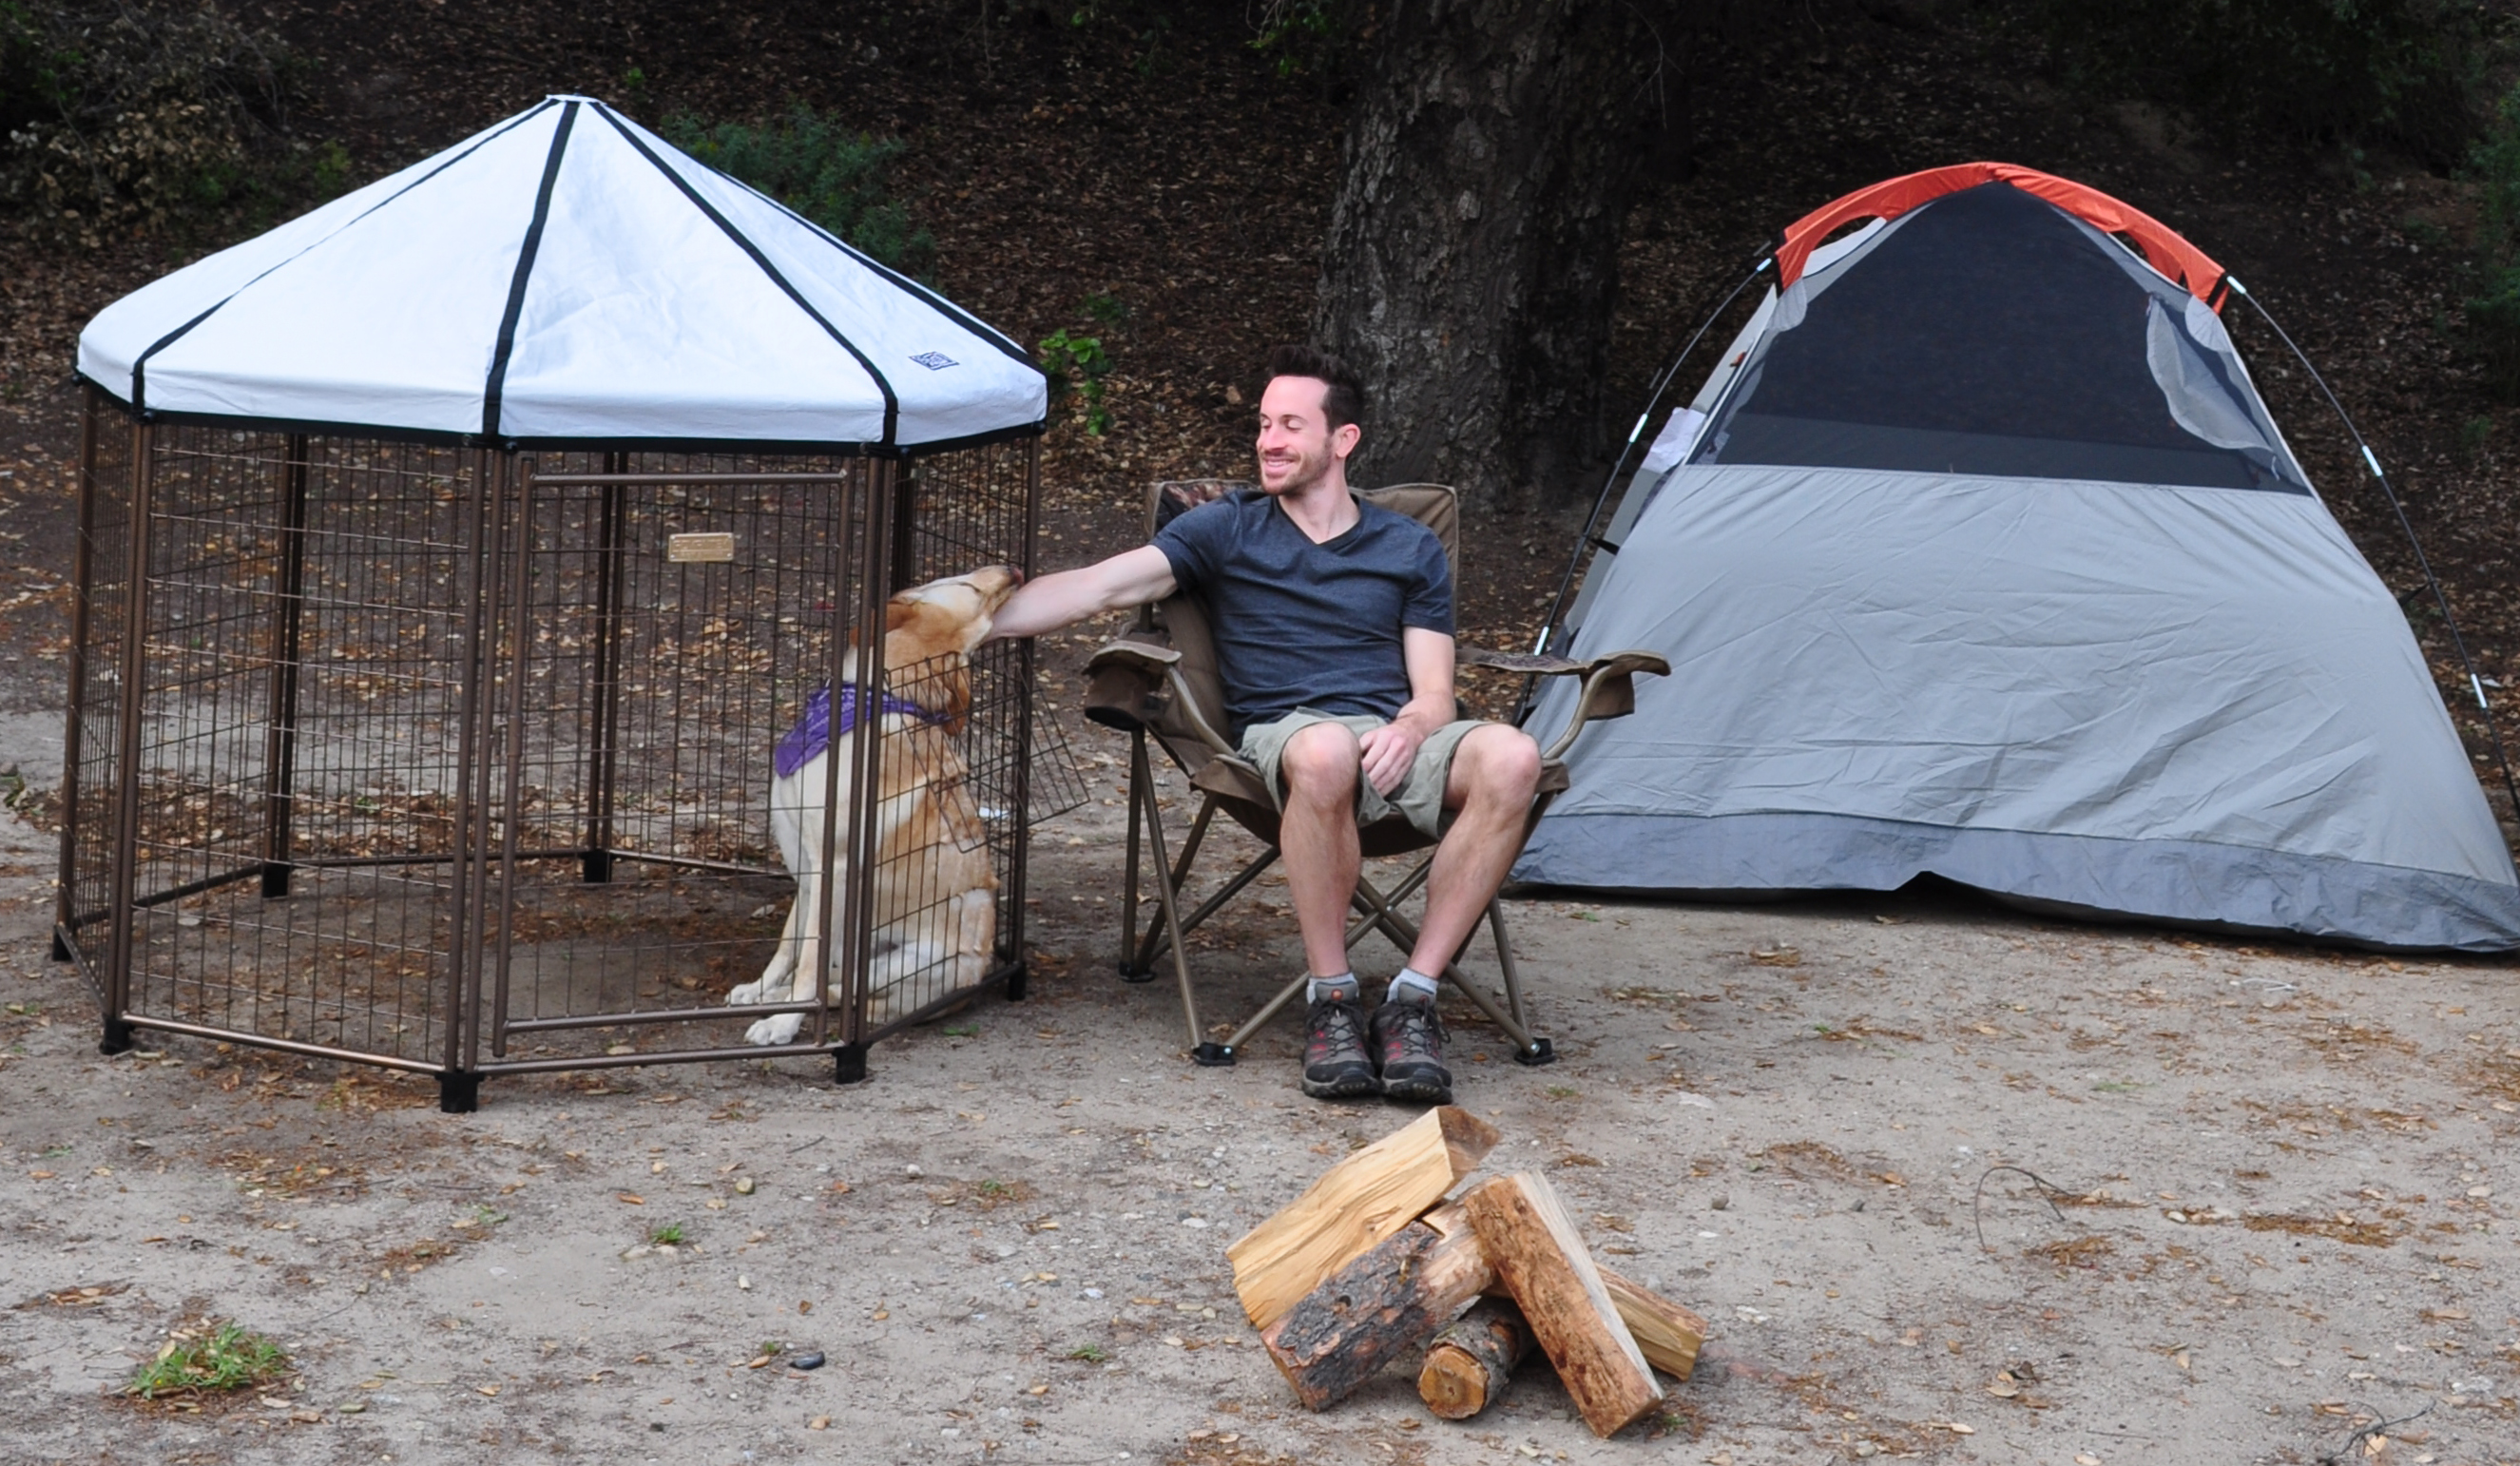 The PET GAZEBO® camping